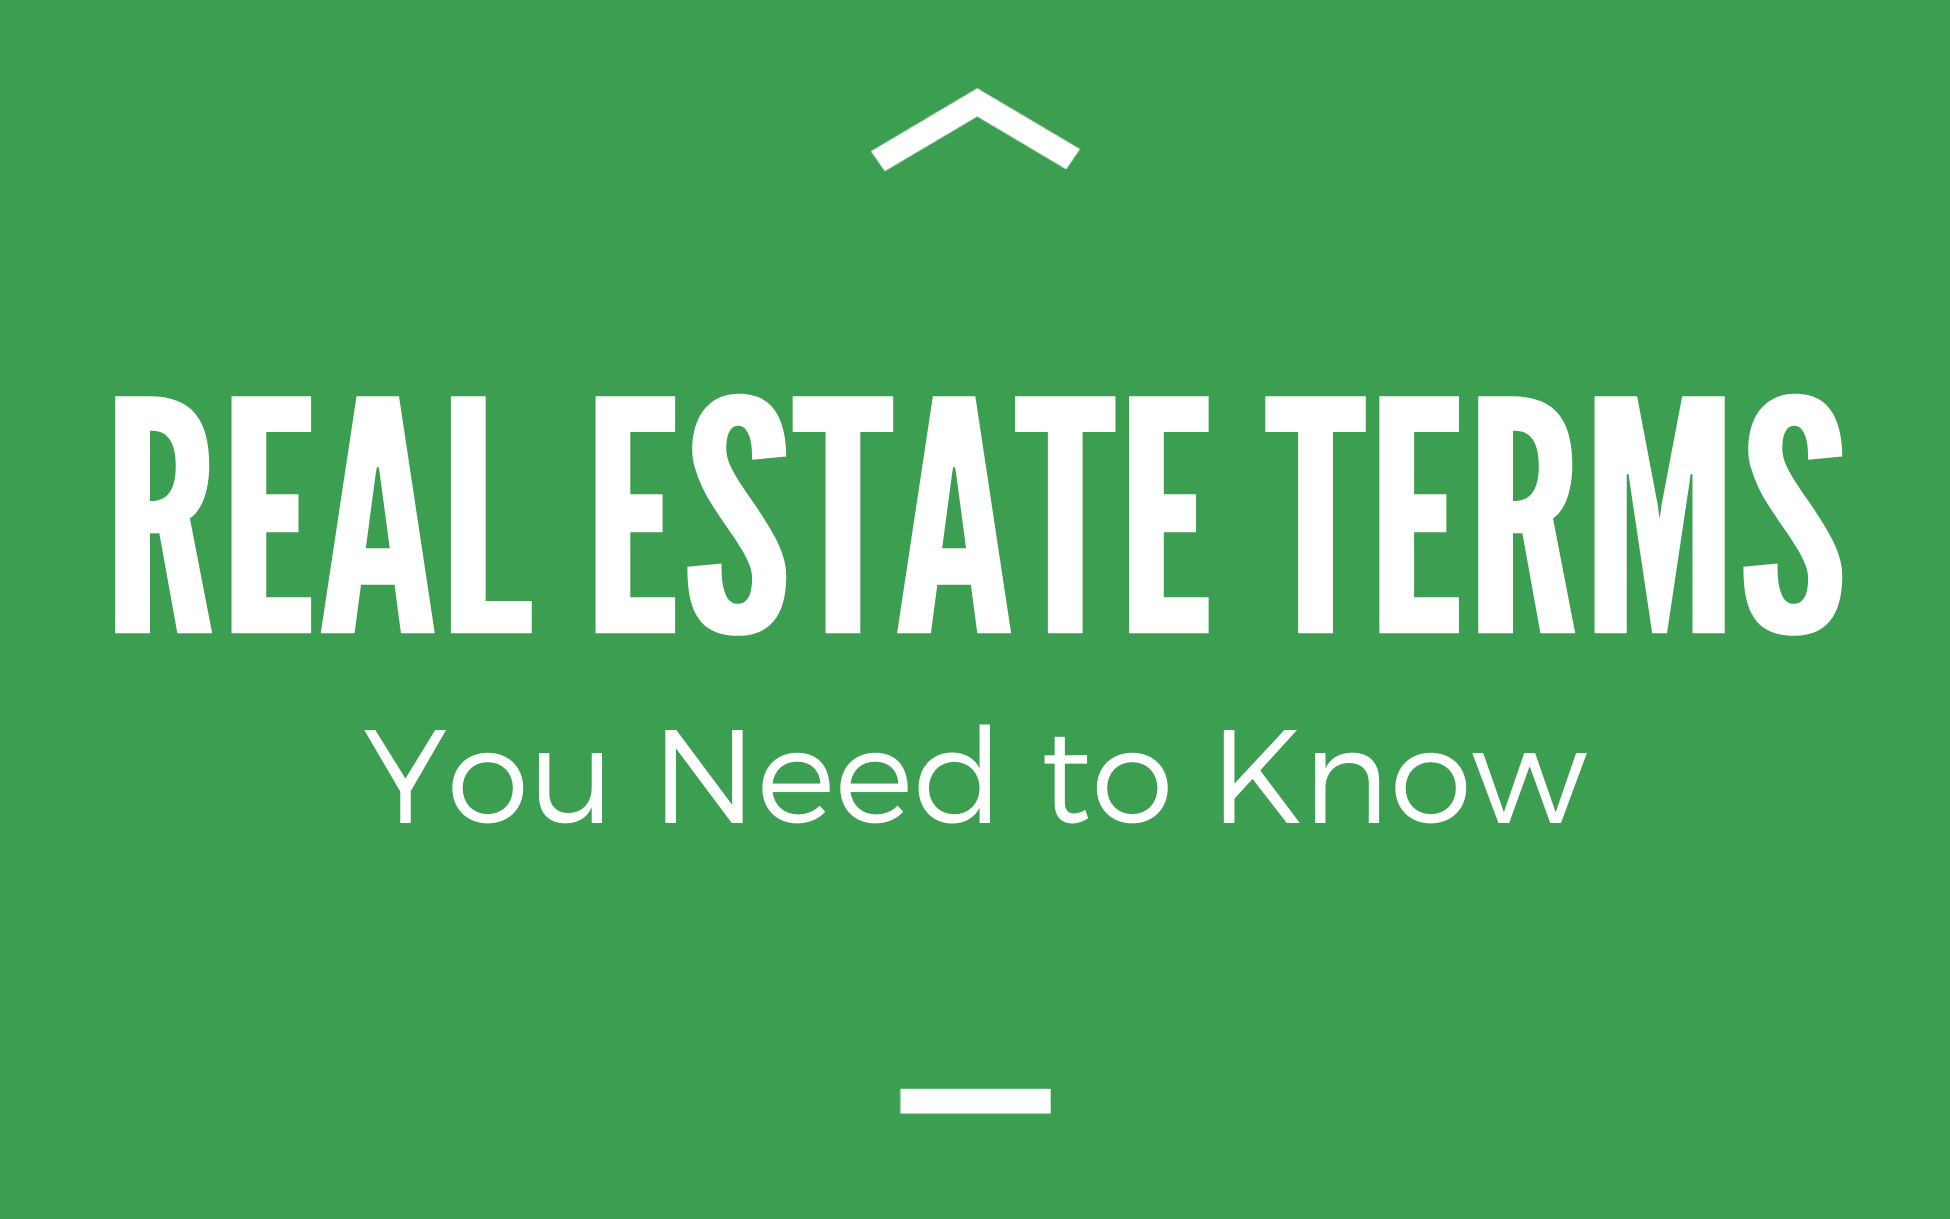 Real Estate Terms You Need to Know